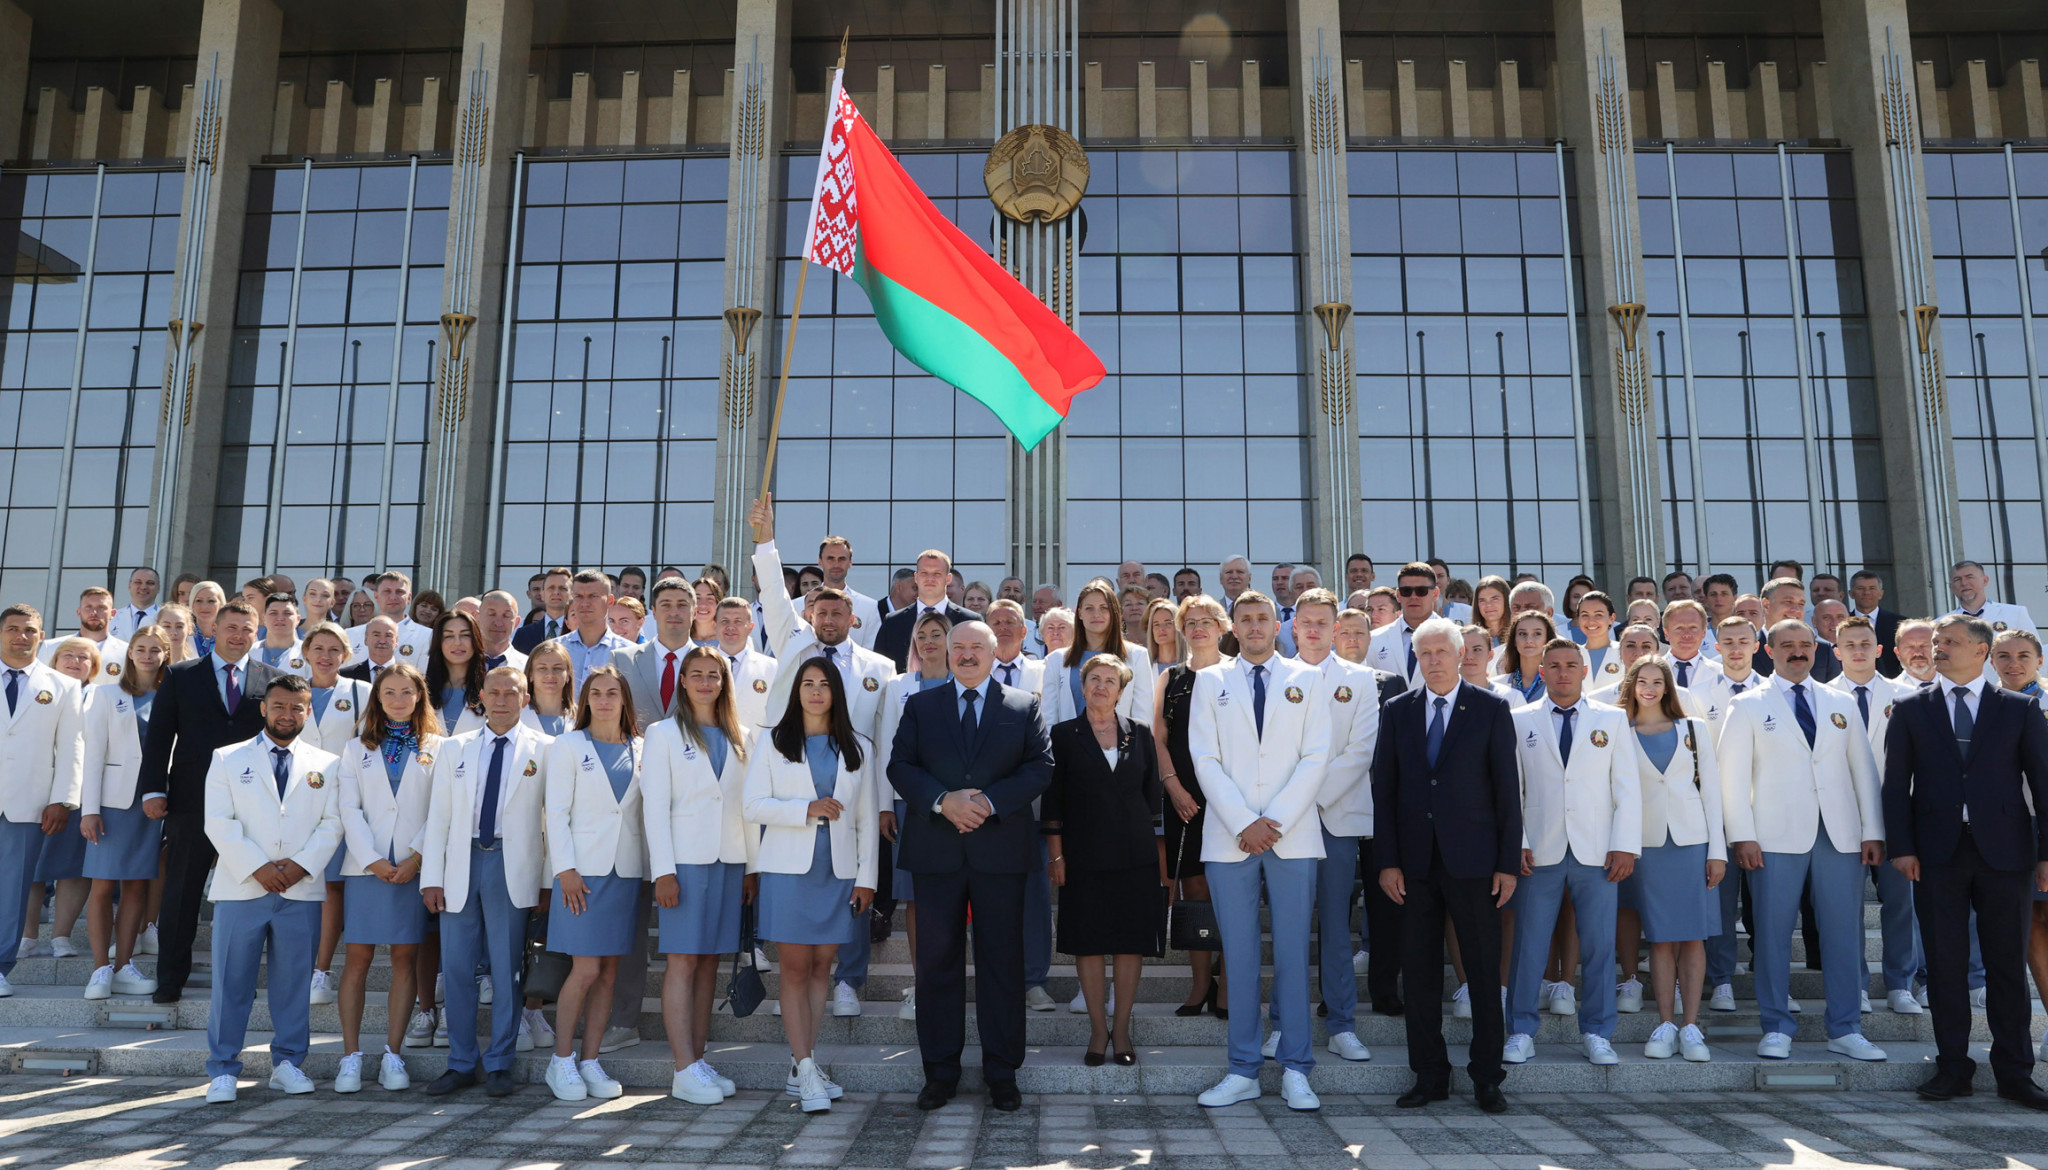 Belarus will be represented by 109 athletes in 20 sports at Tokyo 2020 ©NOCRB